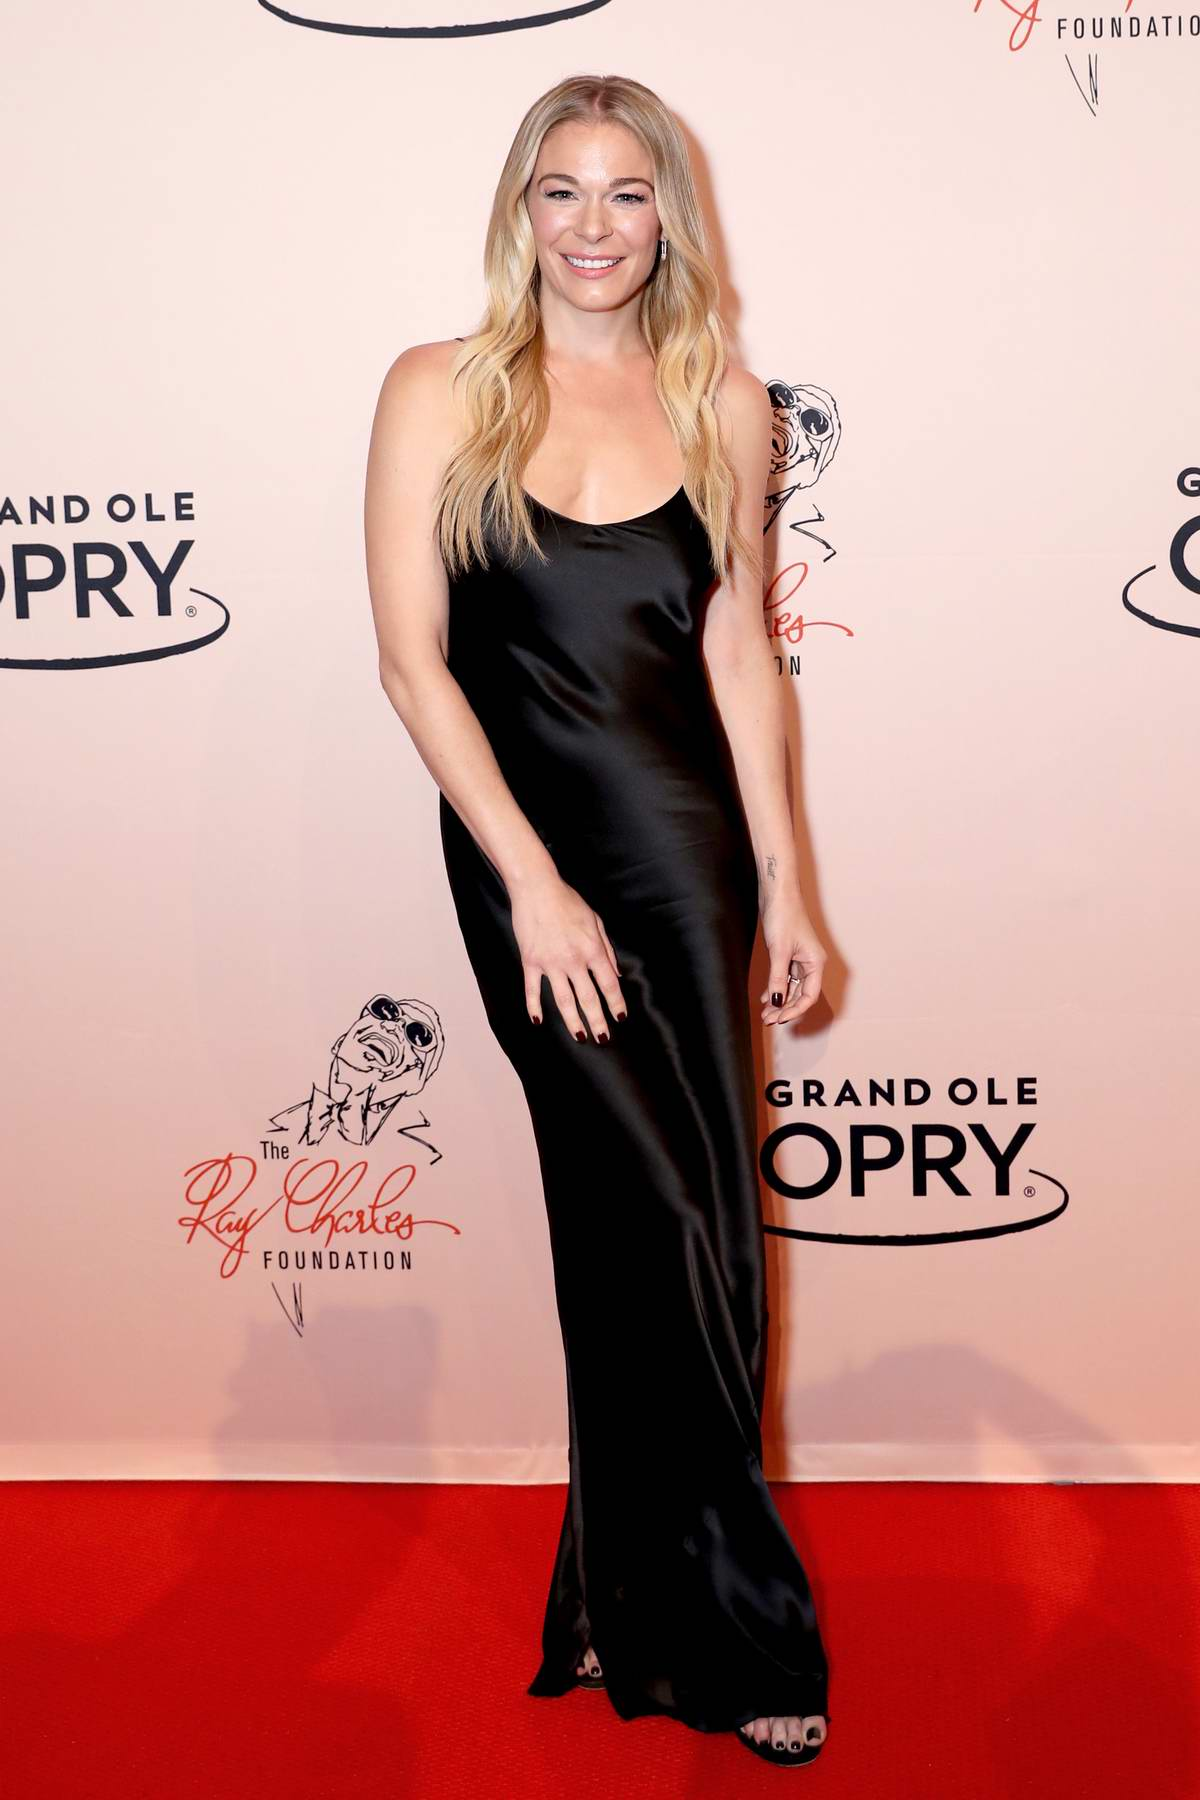 LeAnn Rimes attends 'An Opry Salute To Ray Charles' at the Grand Ole Opry in Nashville, Tennessee